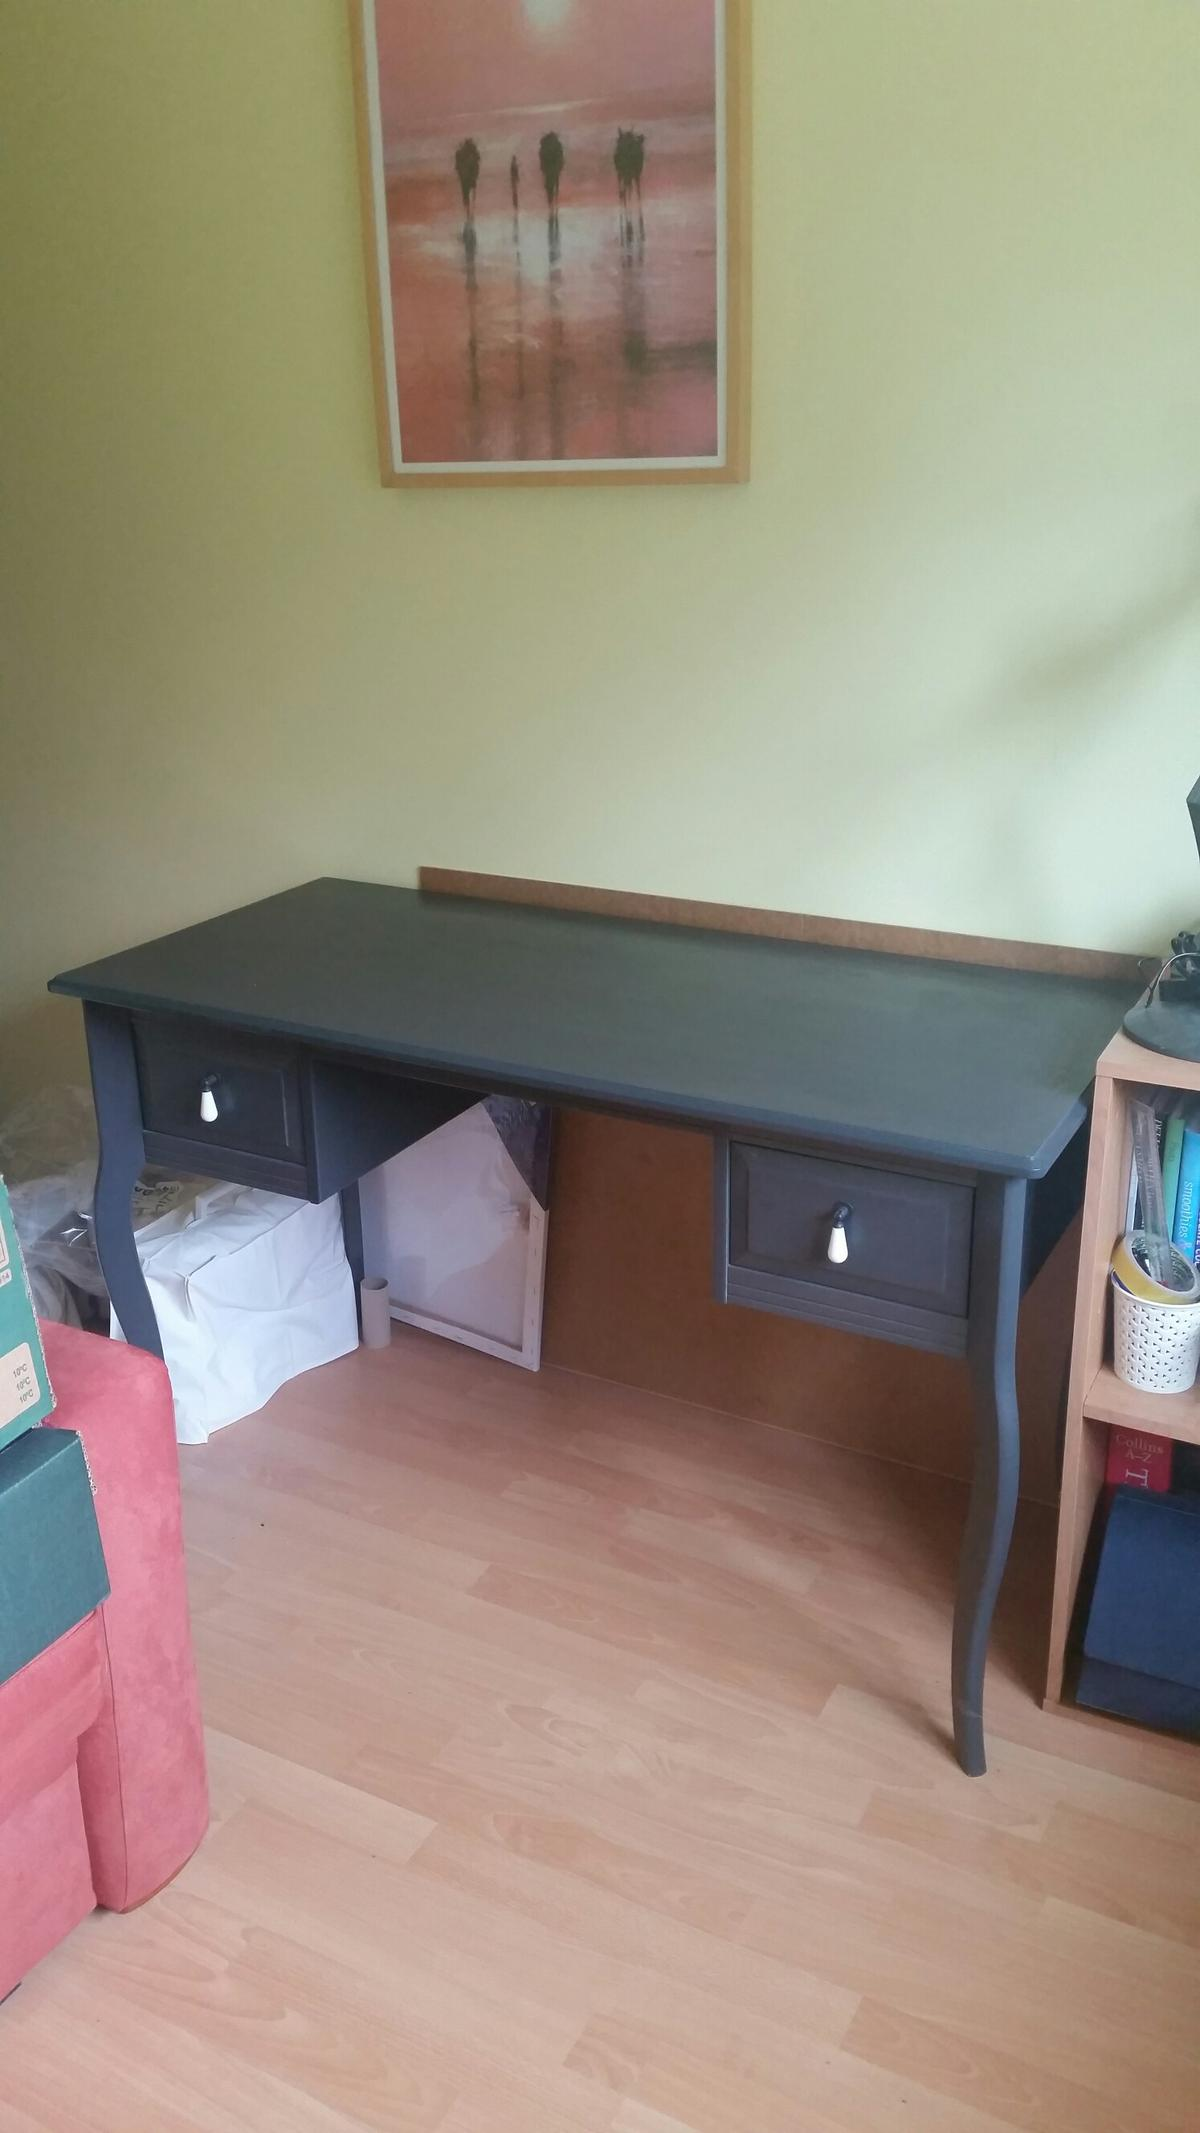 Ikea Edland Dressing Table In Rg23 Oakley For 5000 For